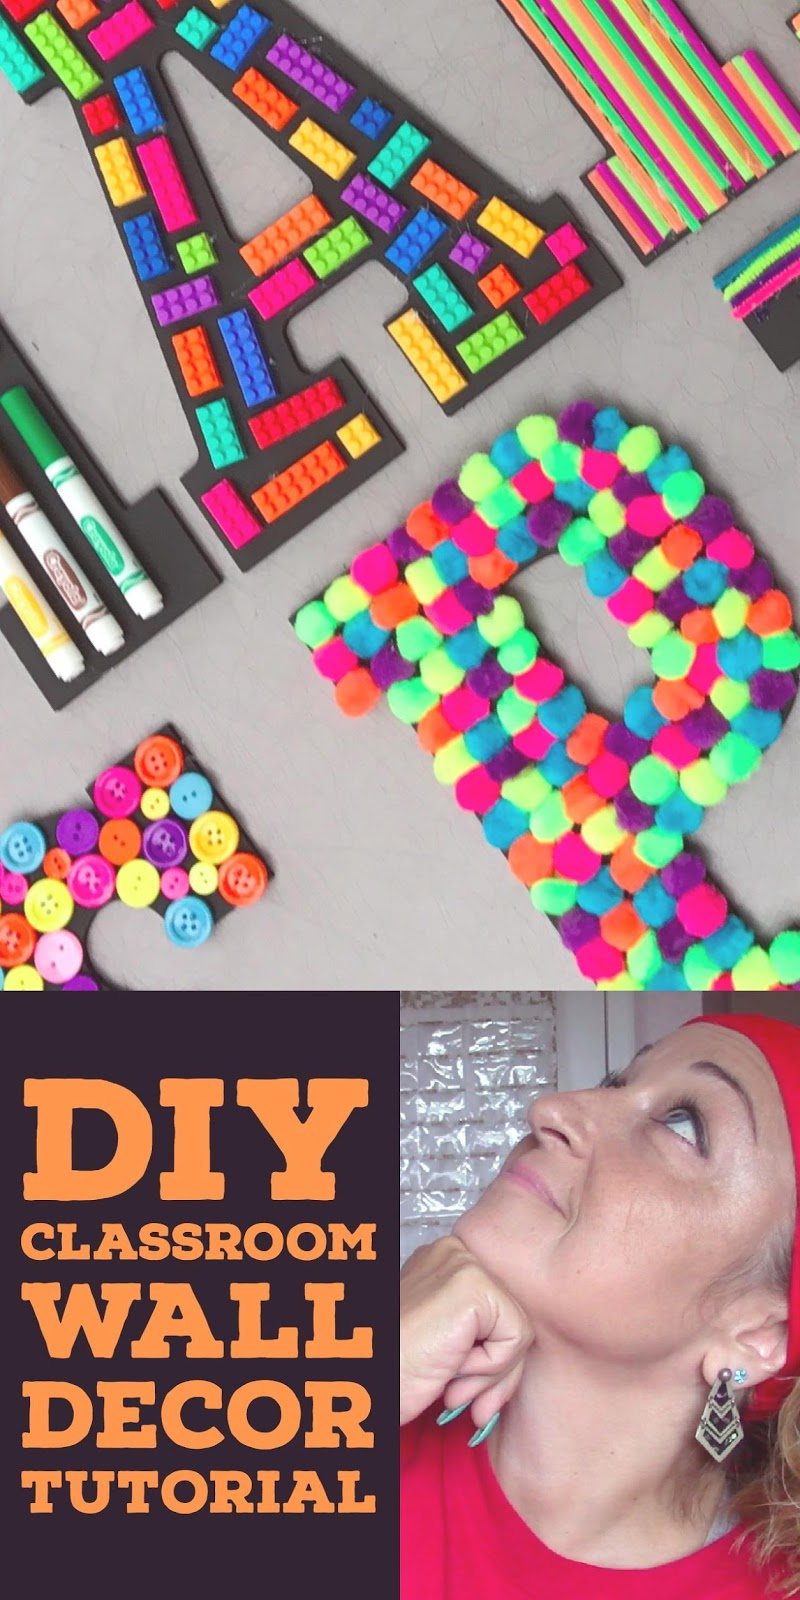 Diy Classroom Wall Decor ~ Diy makerspace classroom wall decor sizzle and sparkle